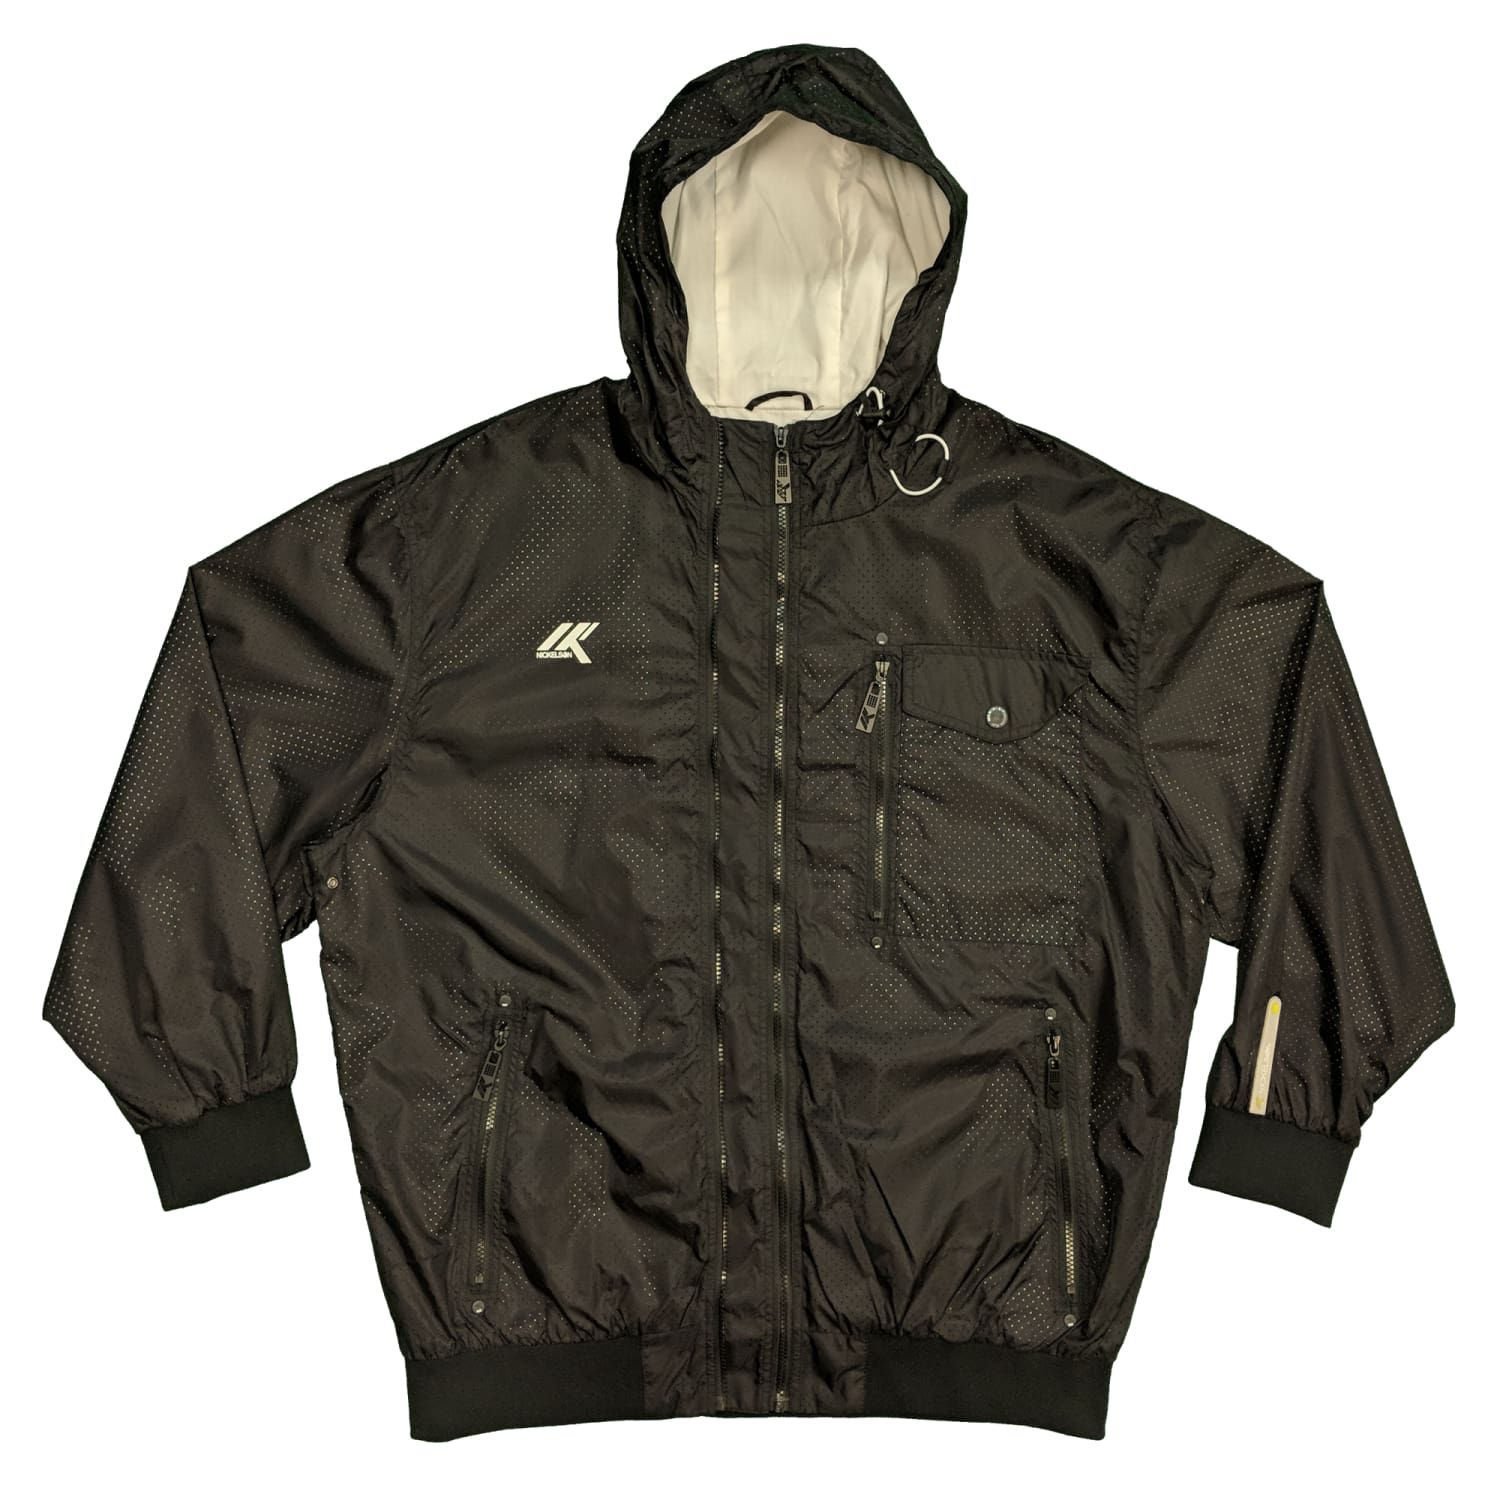 Nickelson Jacket - NMA428L - Miguel - Black 1